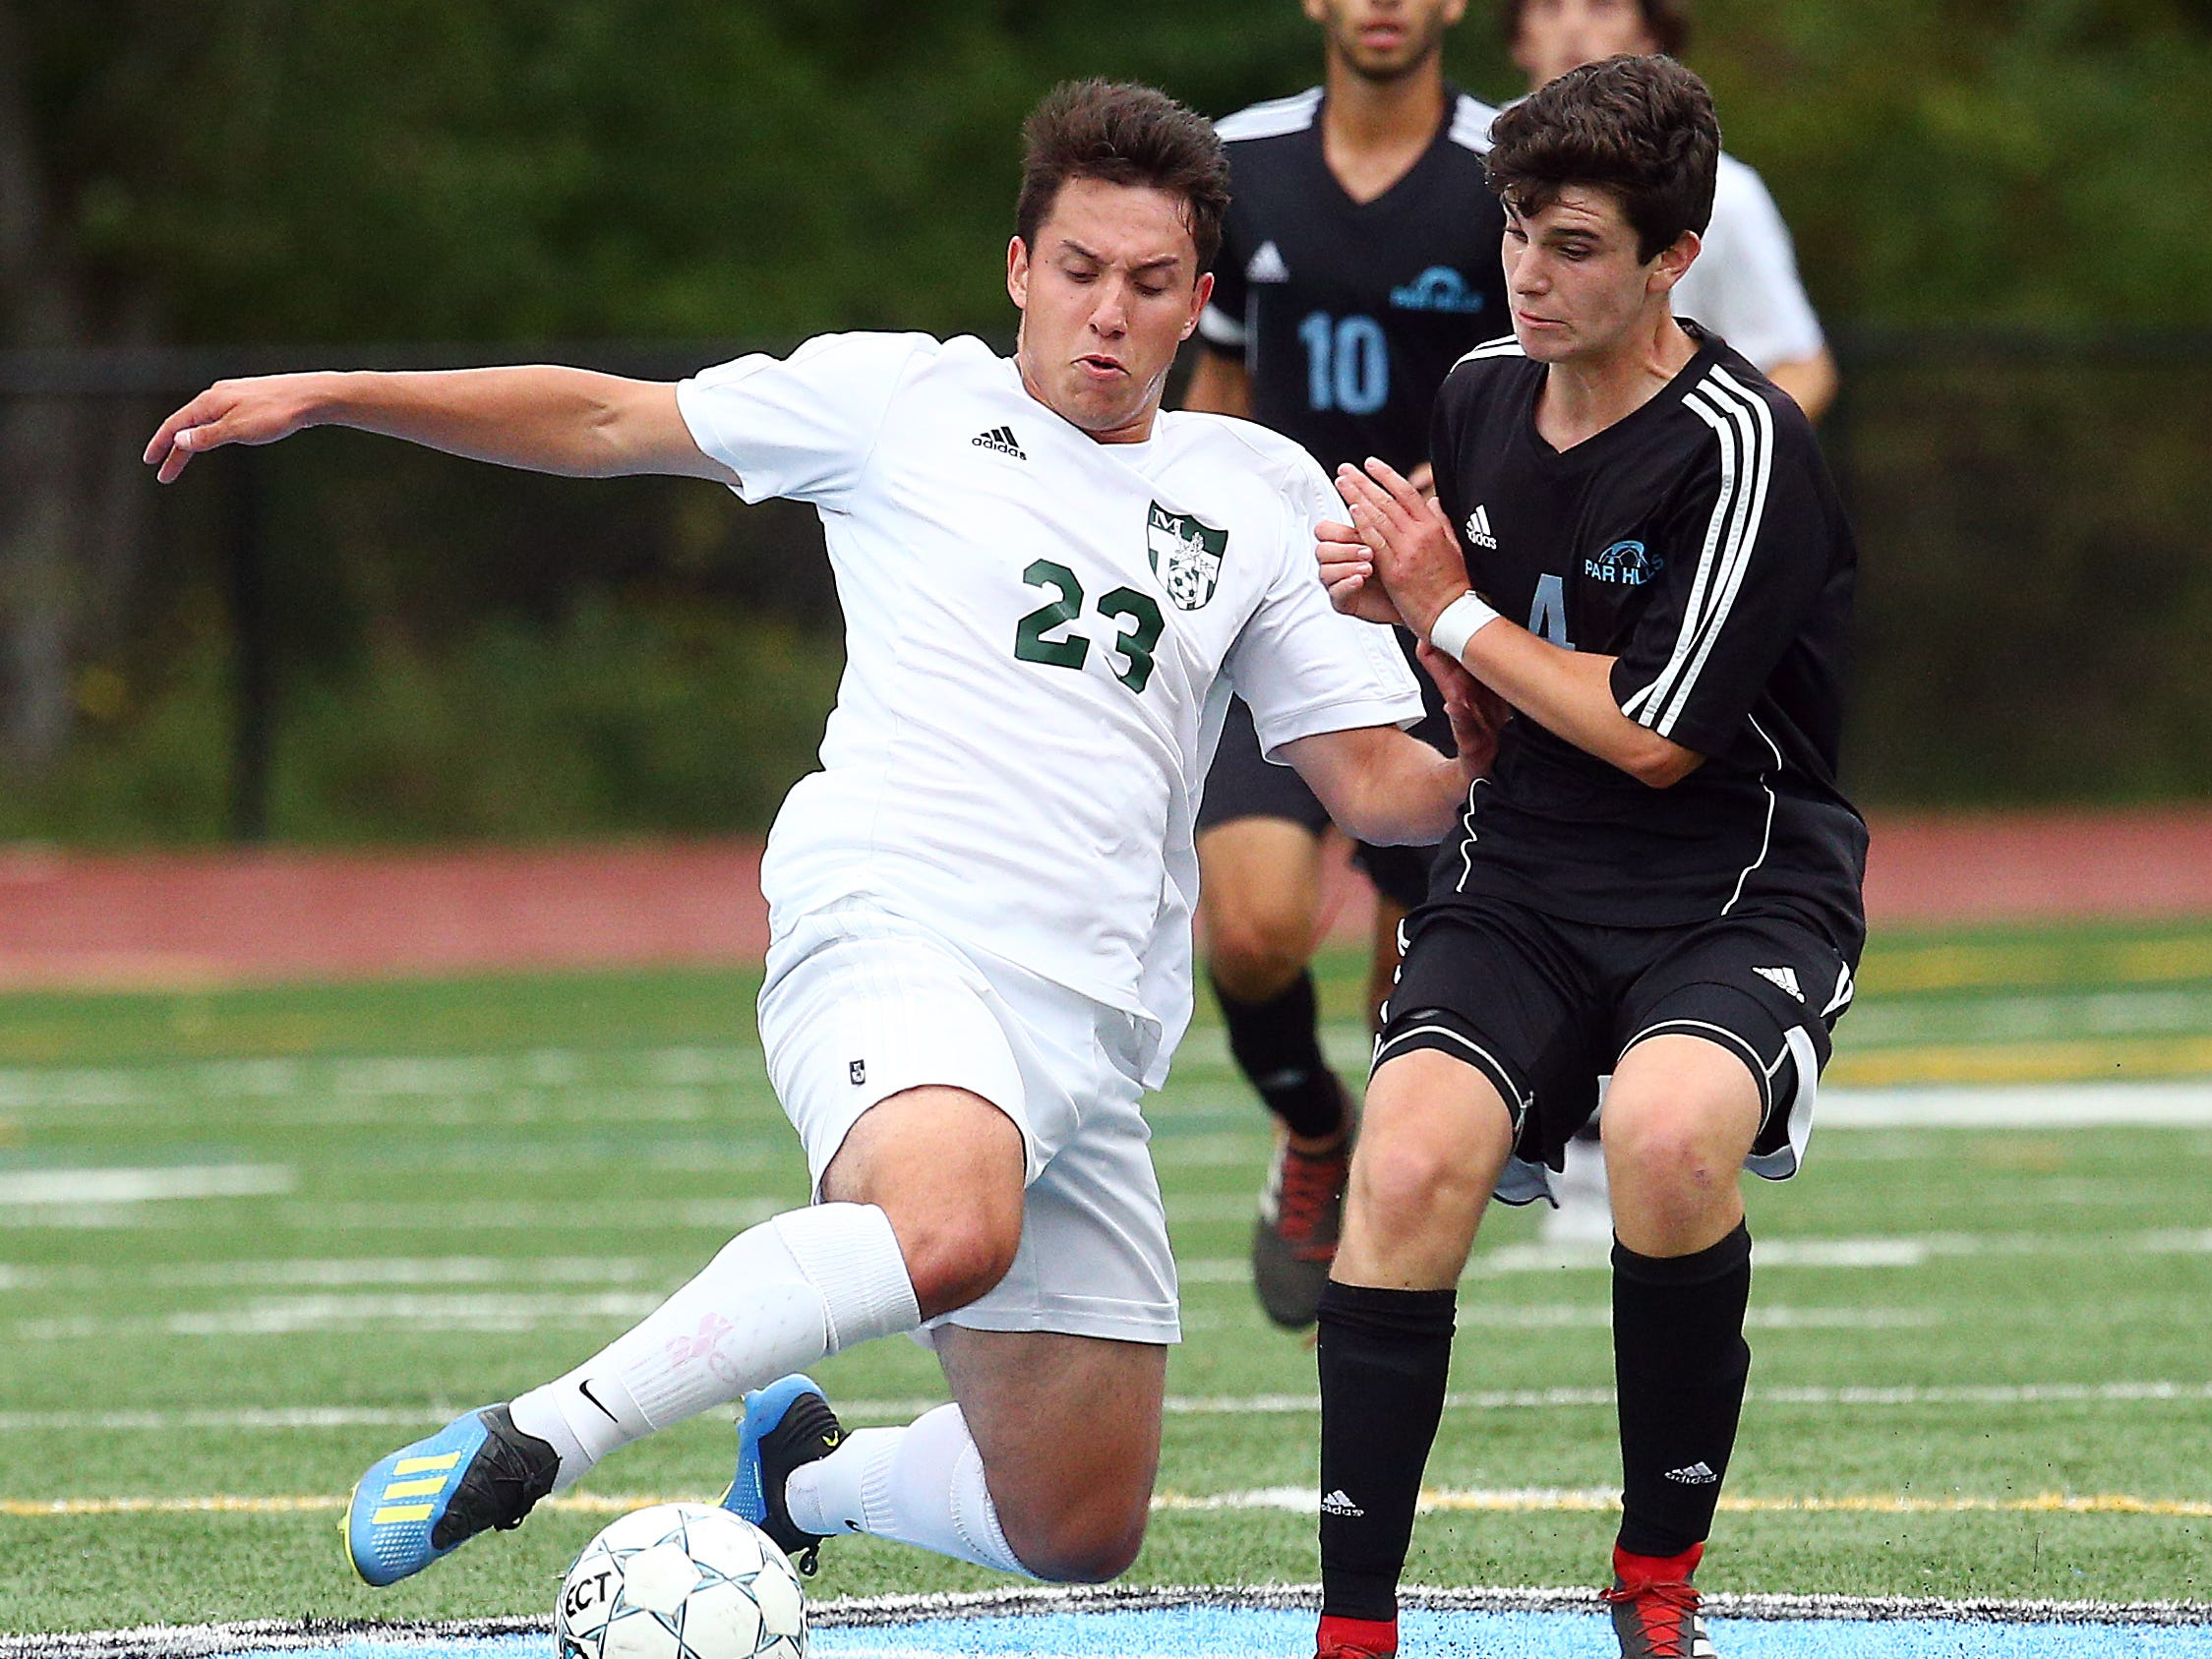 Morris Knolls Max Panagiotou vs. Parsippany Hills Anton Leyzerov during their boys soccer match. September 27, 2018, Parsippany, NJ